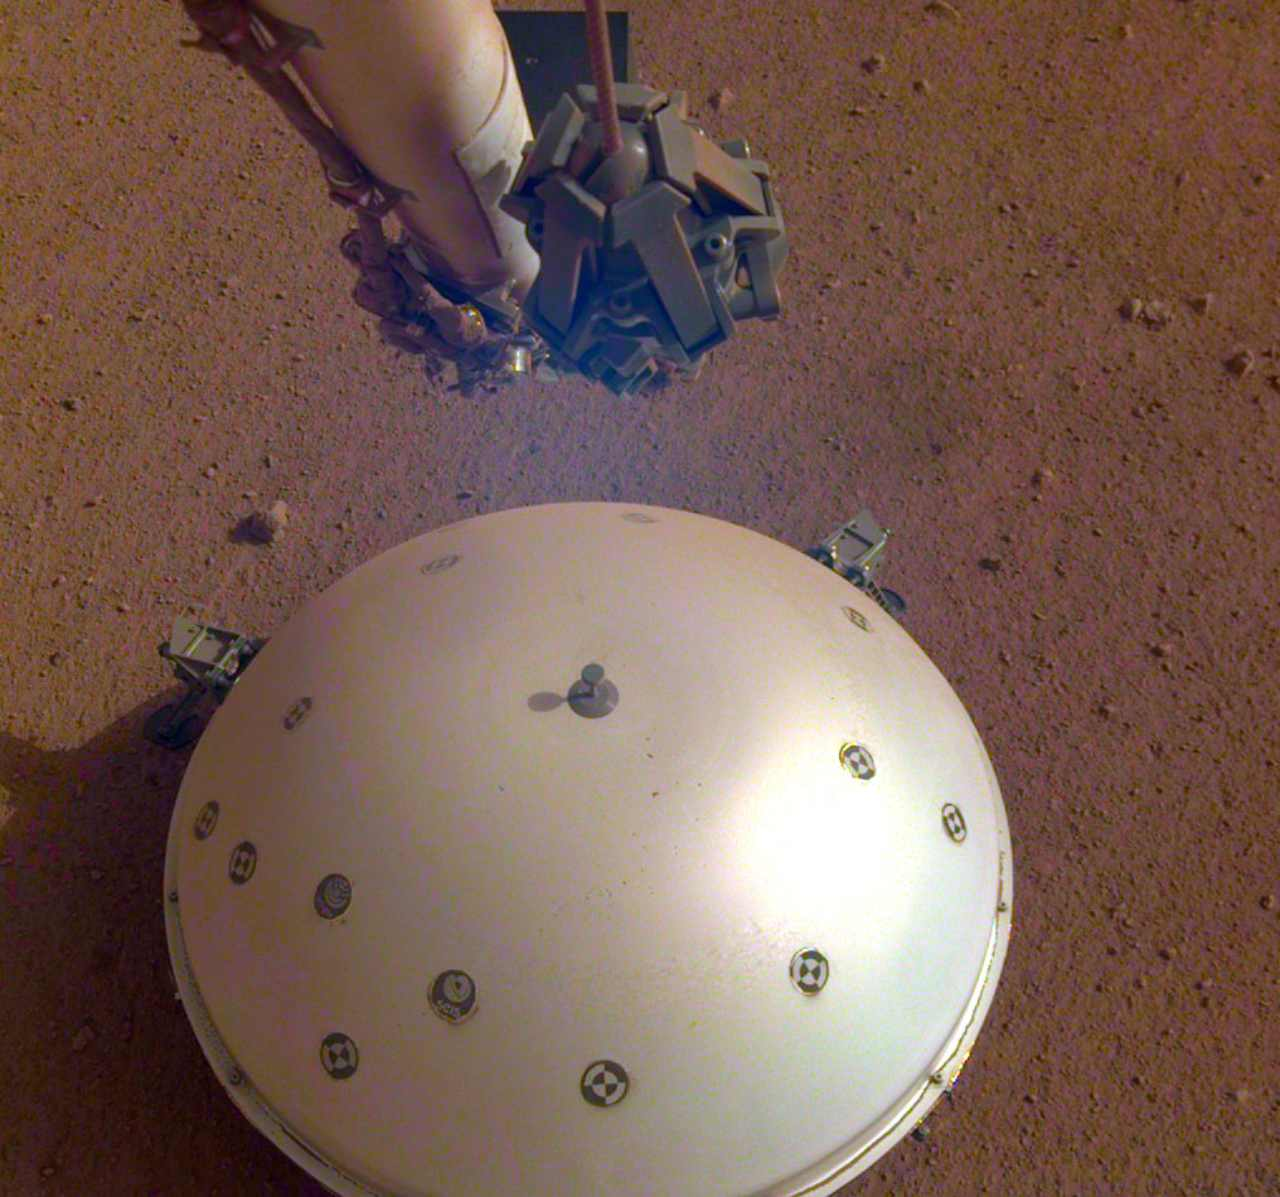 Hear, Hear! NASAs InSight lander catches evidence of first ever quake on Mars